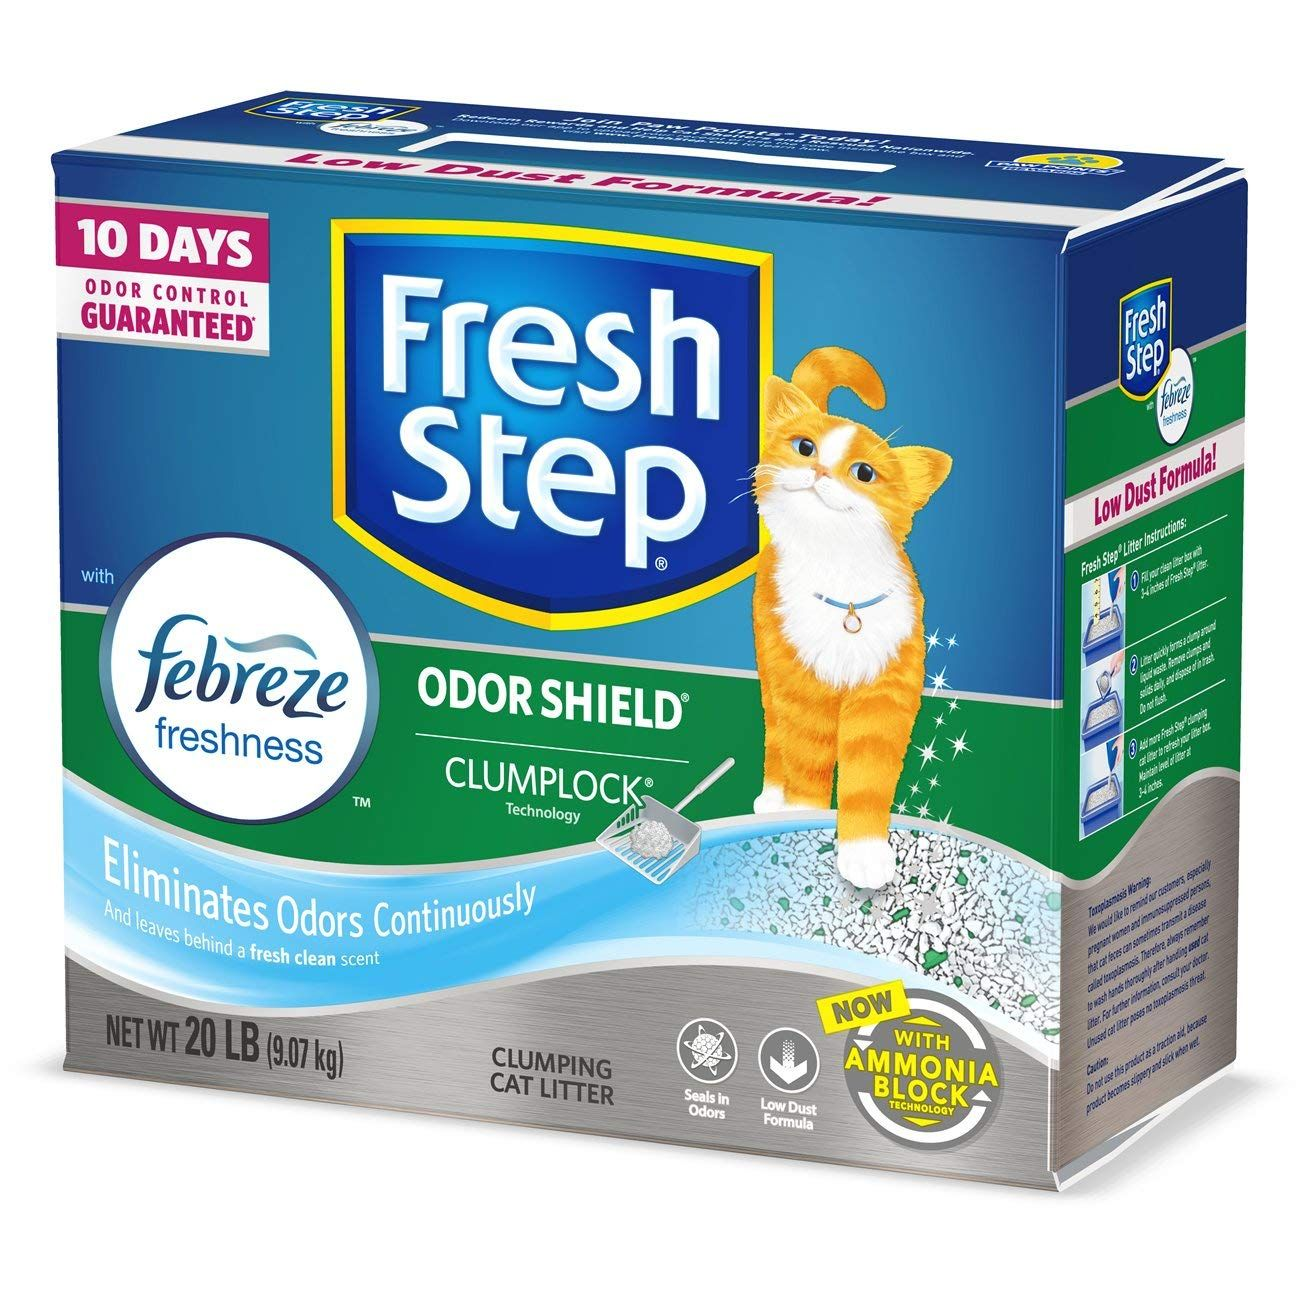 Fresh Step The Power Febreze Clumping Cat Litter Nice Of Your Presence To Drop By To See The Picture This I Clumping Cat Litter Cat Litter Cat Litter Odor